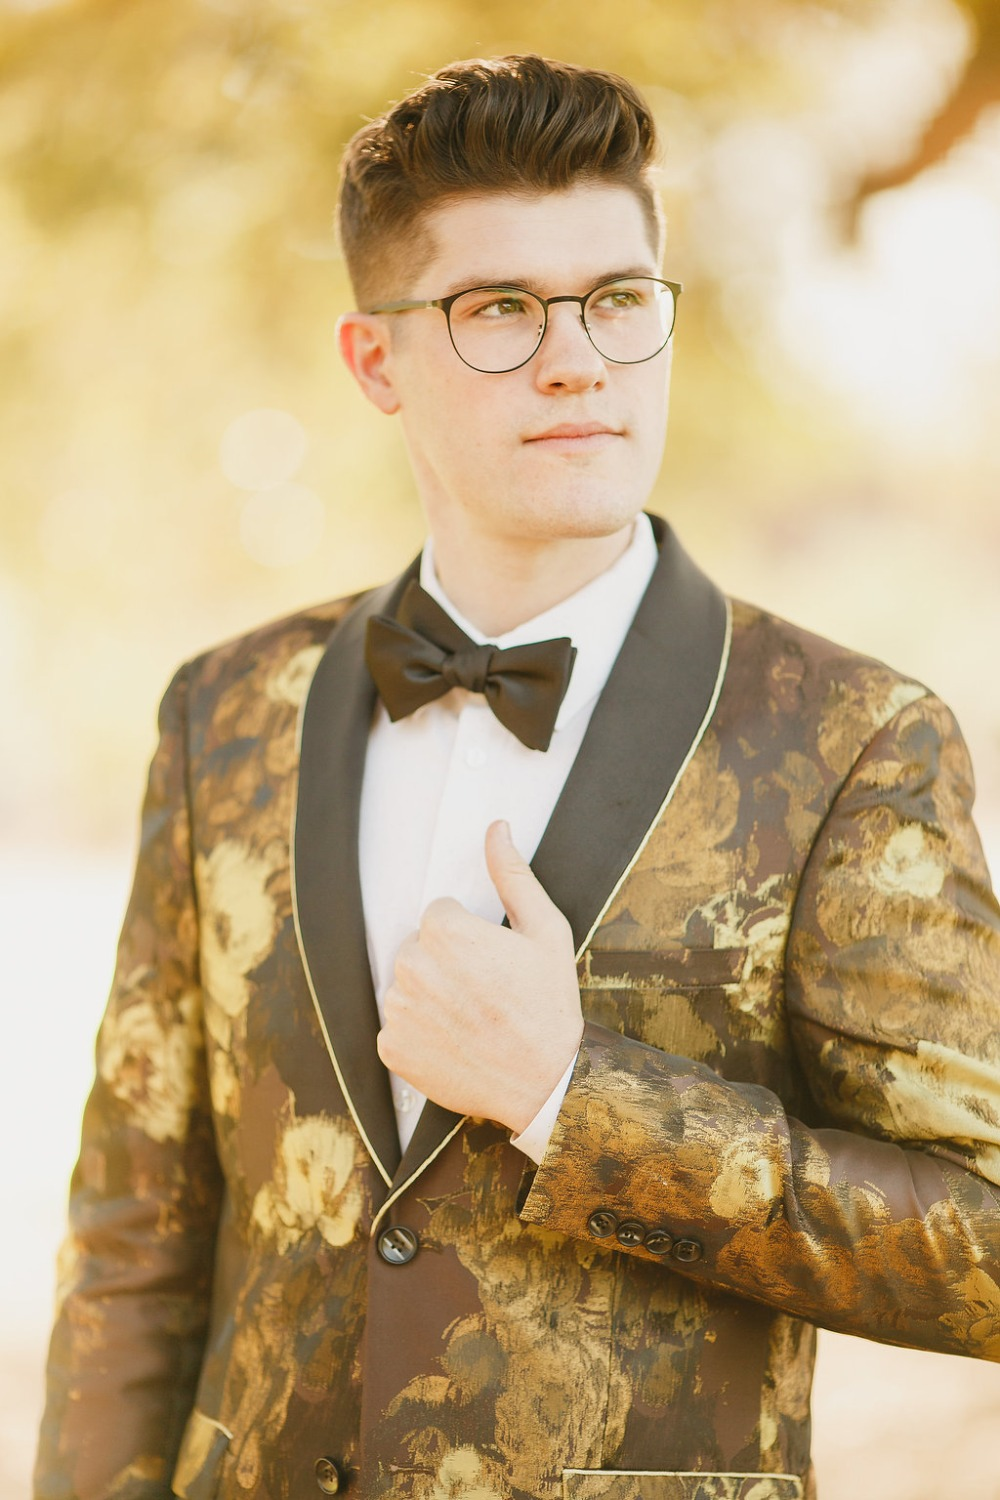 Floral Fairytale Shoot at Heavenly Oaks Flower Farm Groom Smiling